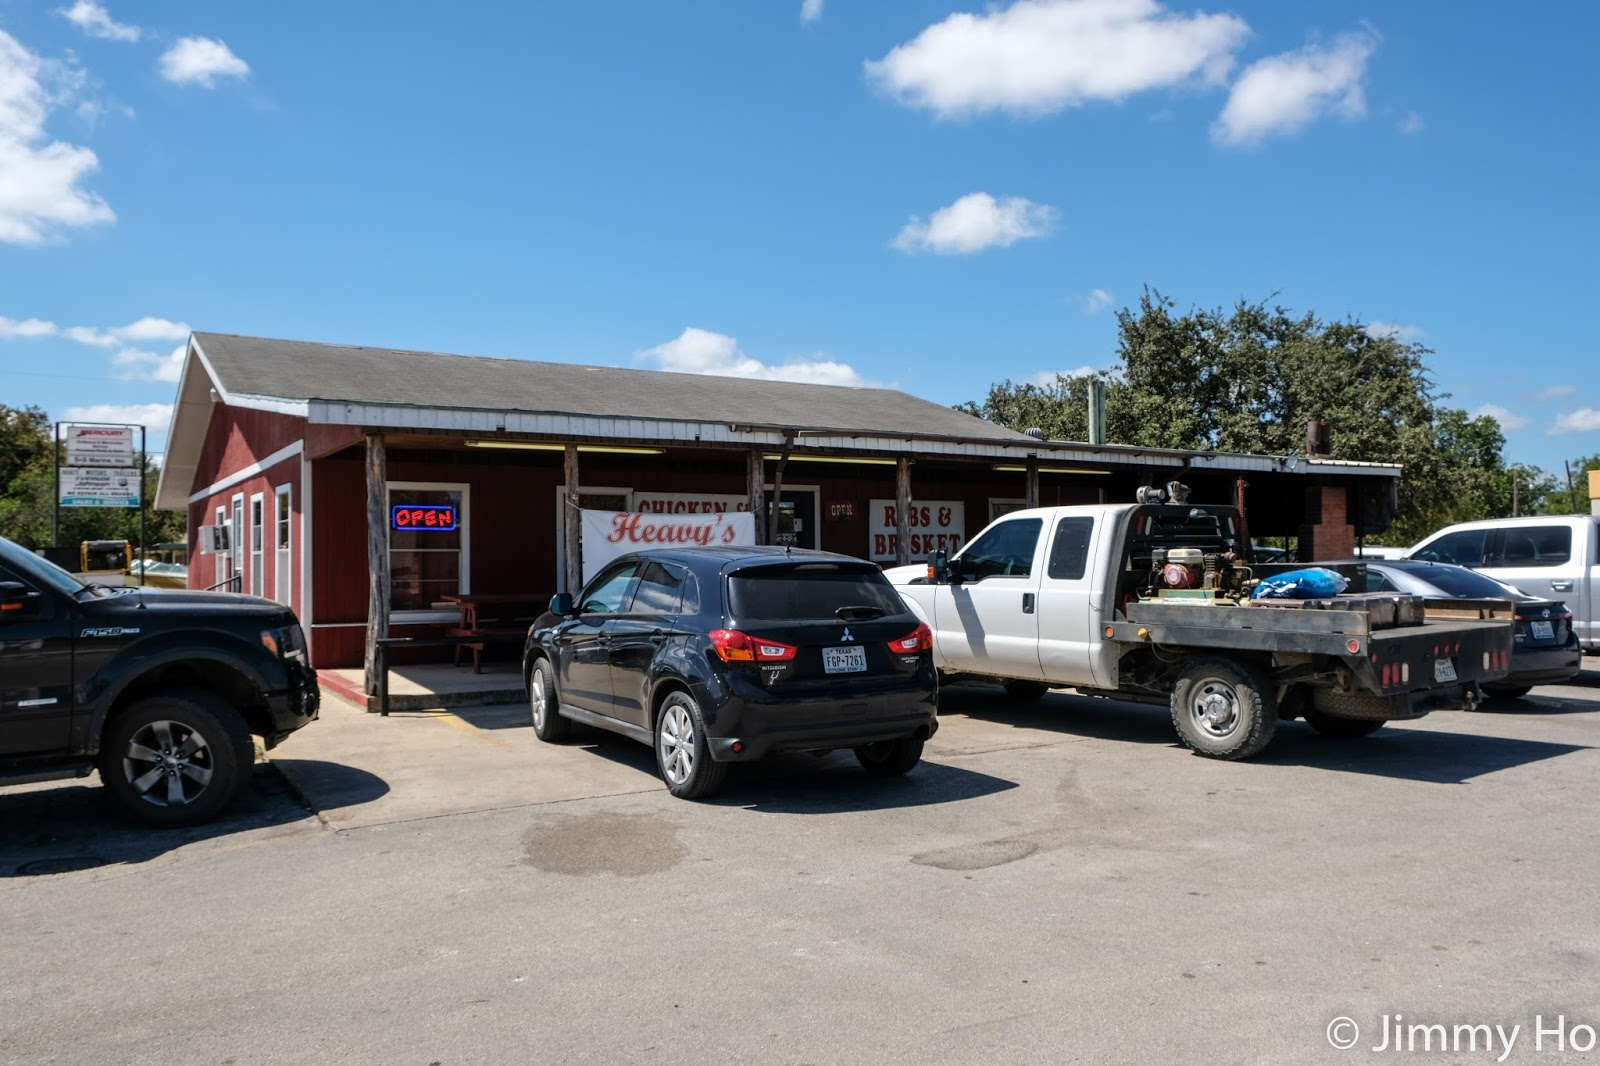 Heavy's Outdoor Bar-B-Que (First Impression)